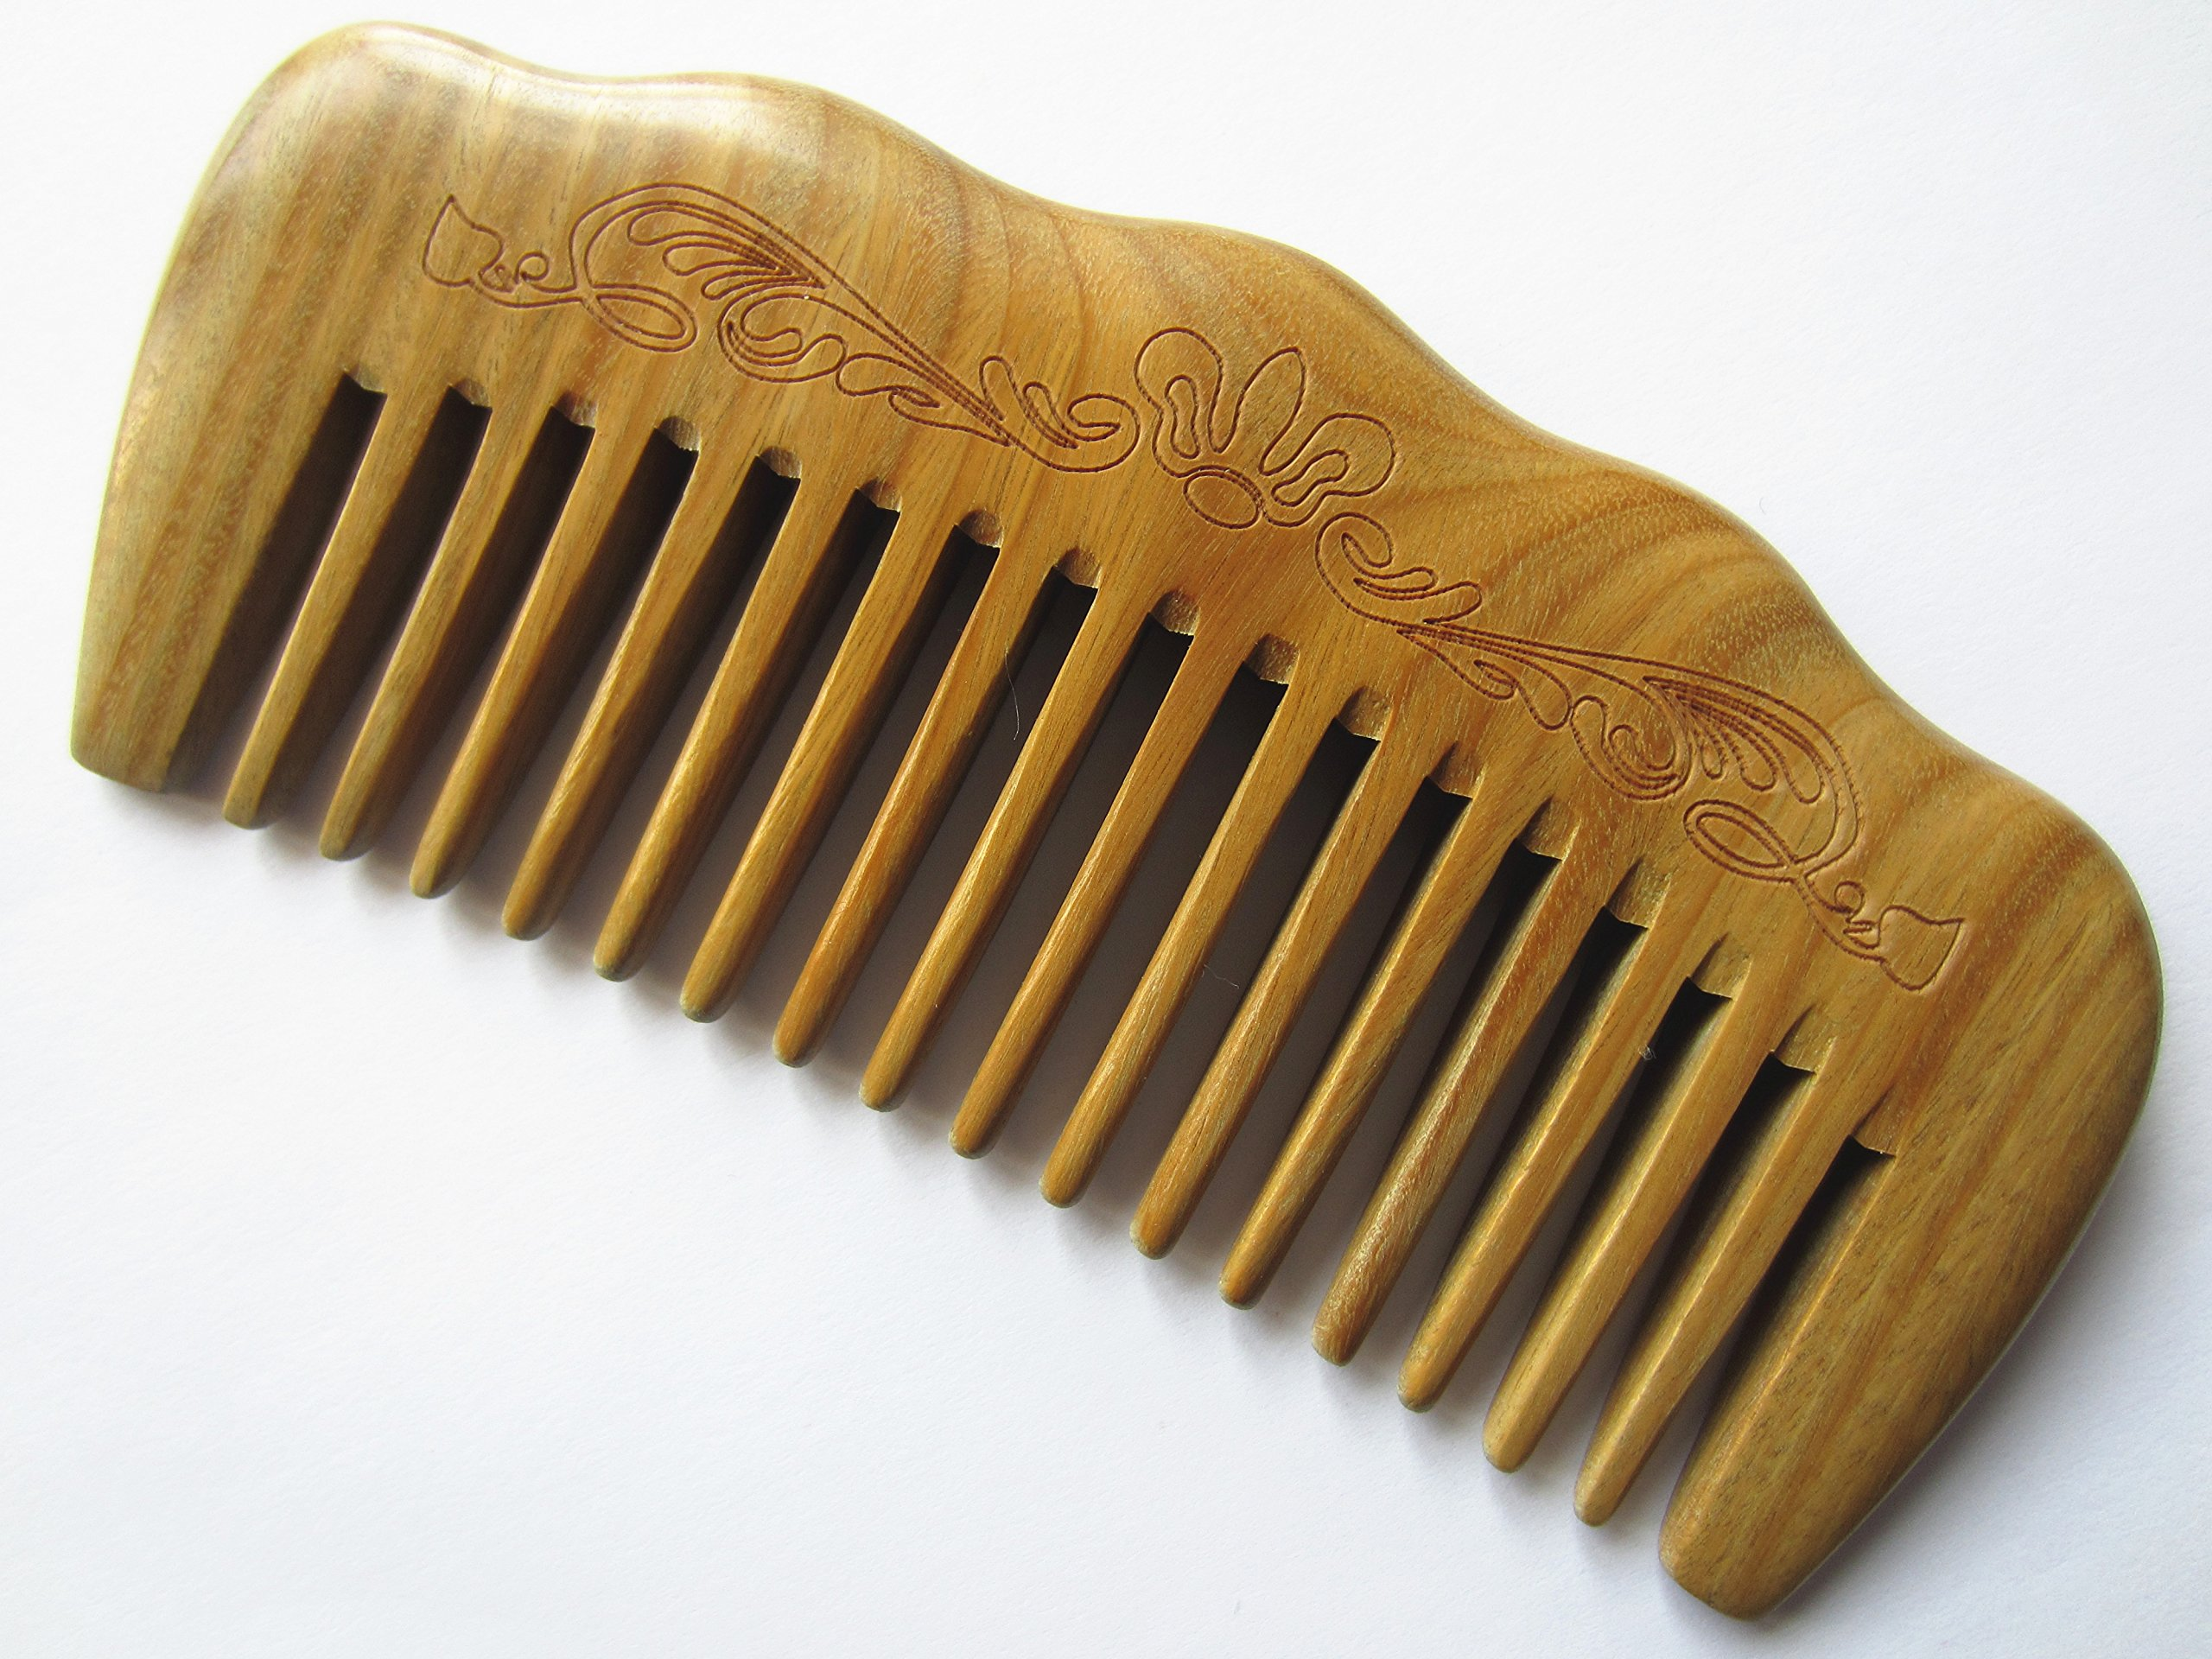 """Myhsmooth Gs-by-mt Handmade Natural Green Sandalwood No Static Comb with Aromatic Scent for Detangling Curly Hair and Gift (4.9"""" Wide Tooth)"""